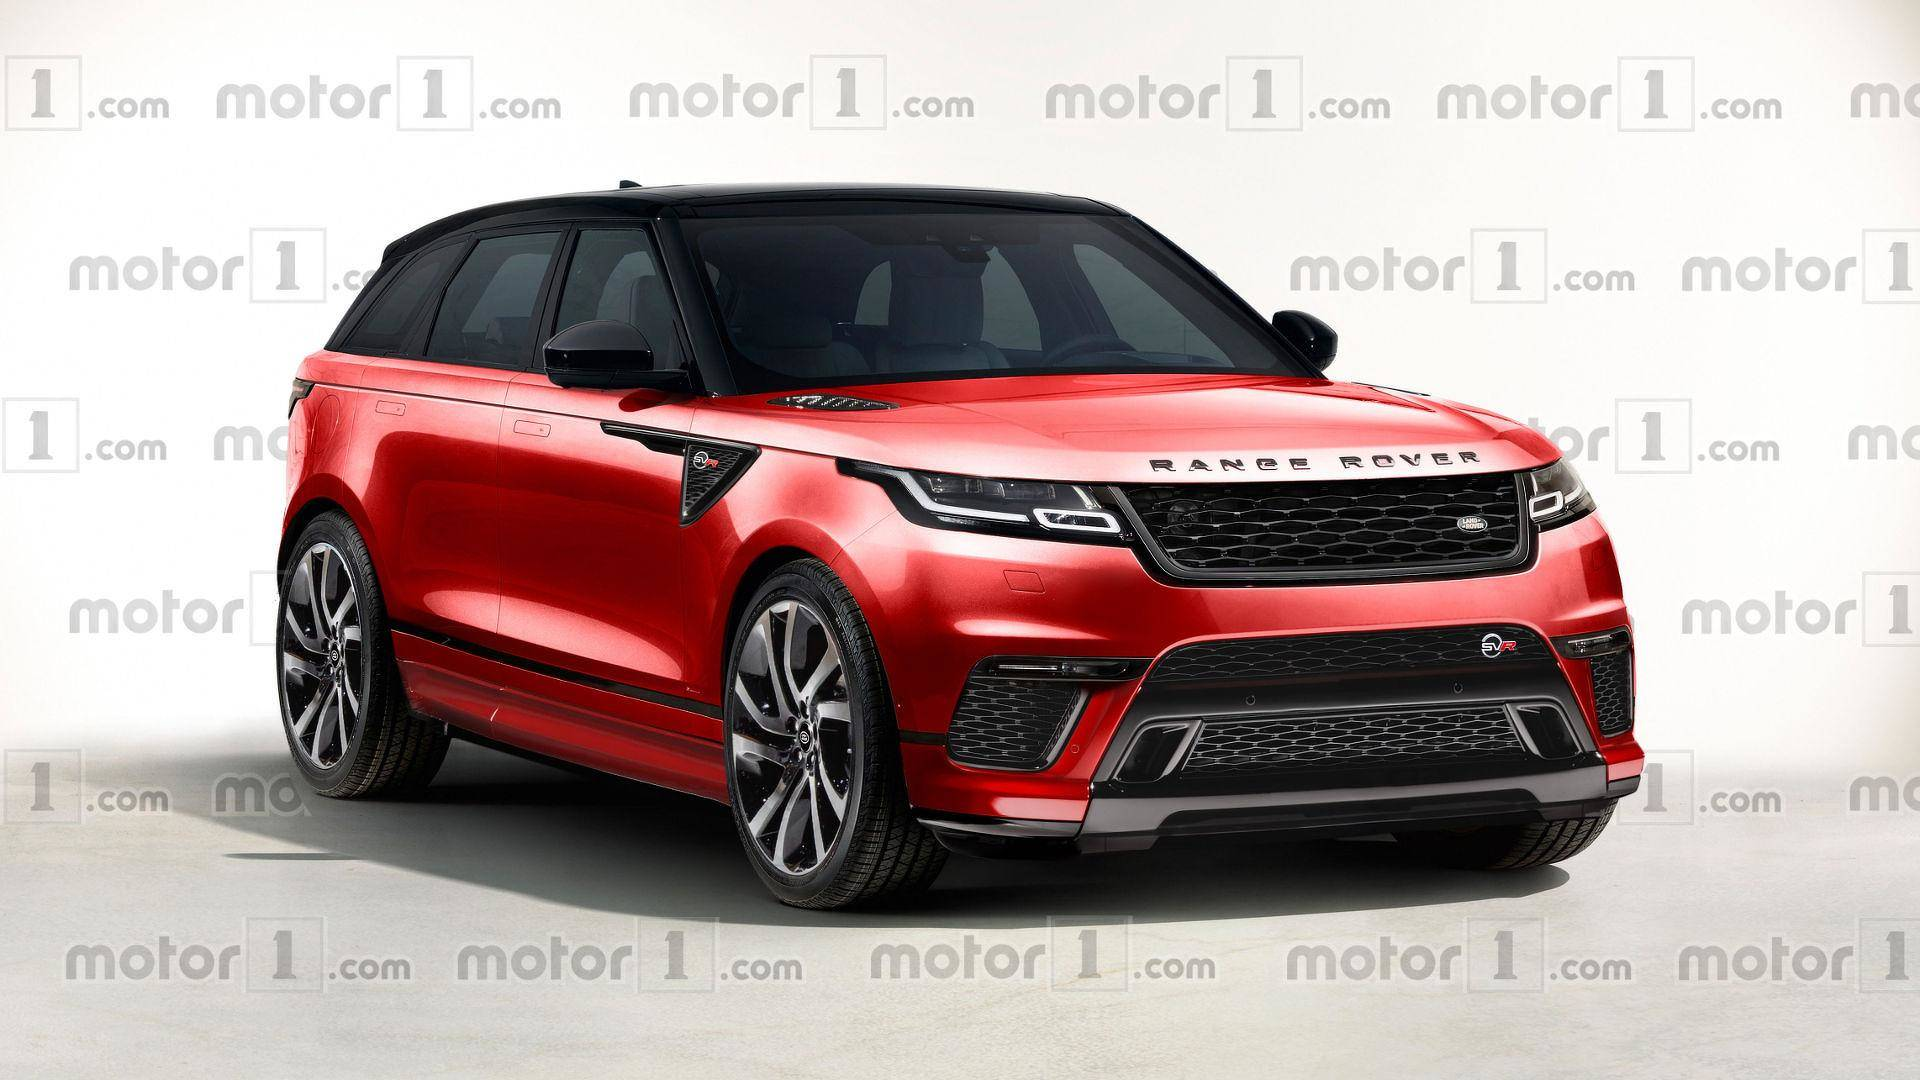 2019 Suvs Worth Waiting For >> 25 Future Trucks And Suvs Worth Waiting For